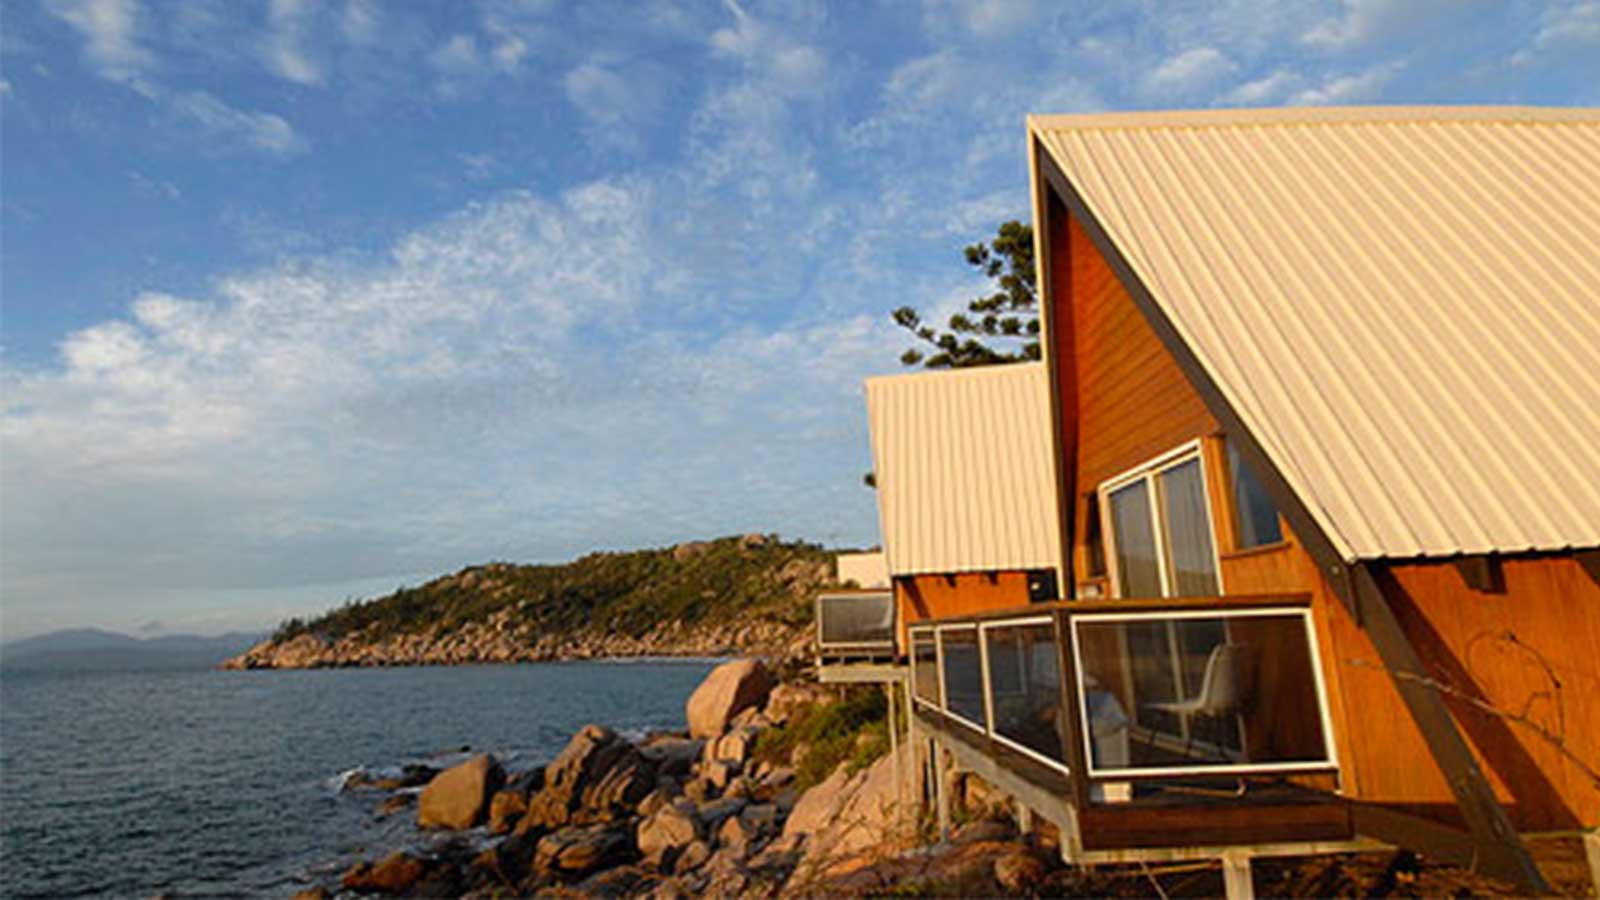 Accommodation overlooking the ocean